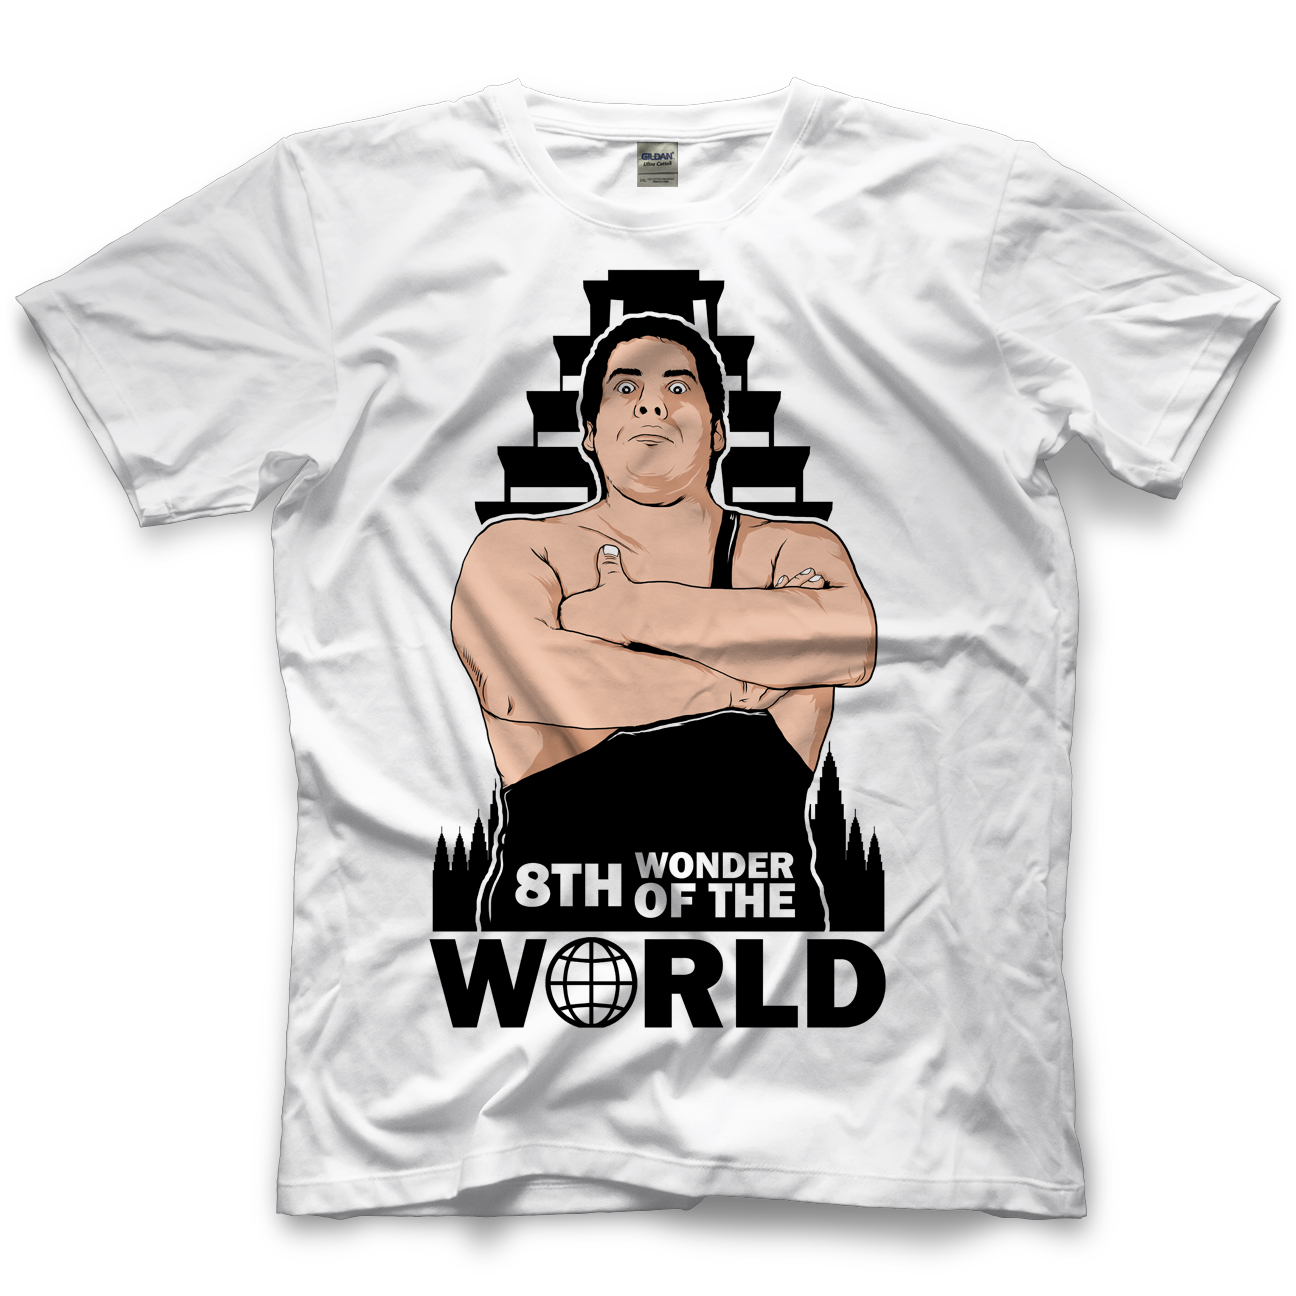 Andre The Giant 8th Wonder Of The World T-shirt